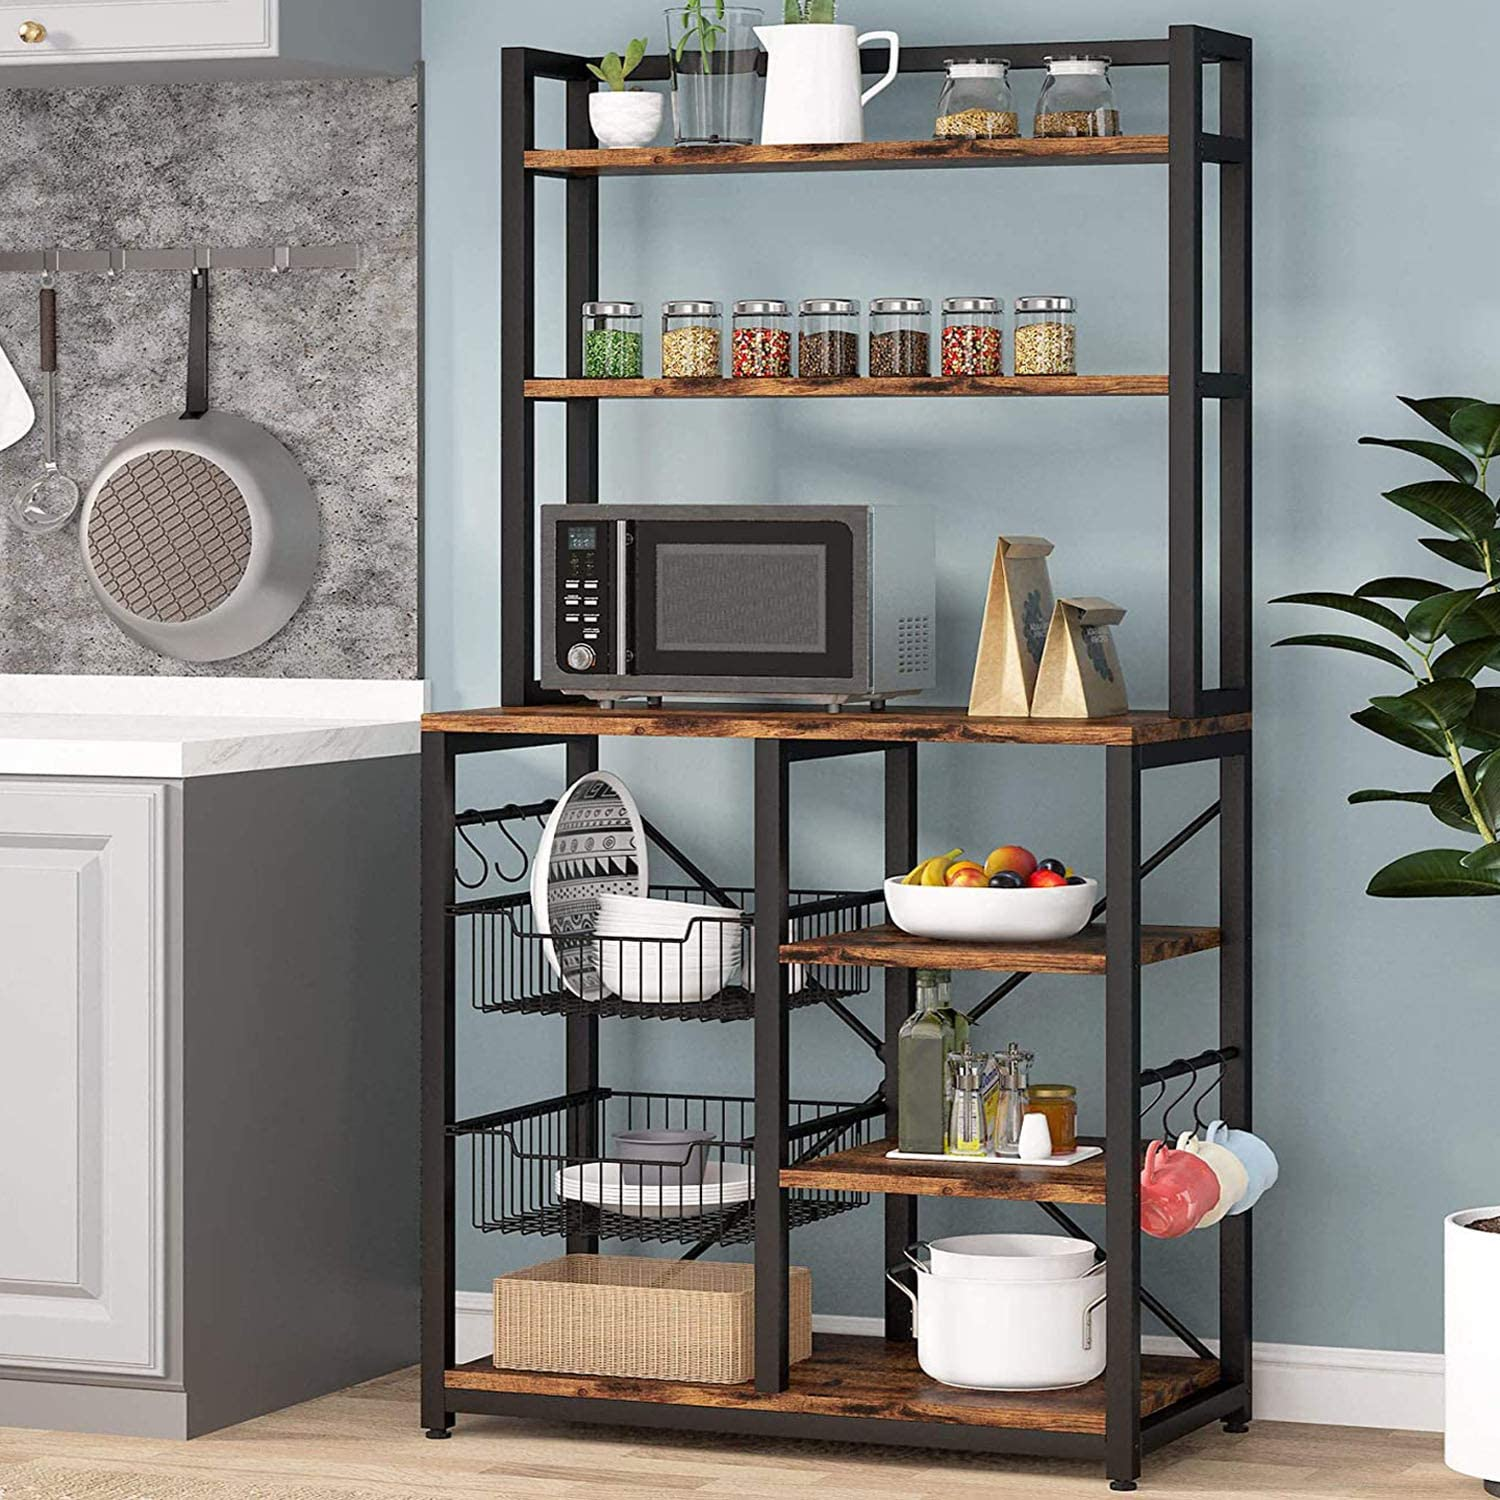 New product!! Tribesigns 6-Tier Kitchen Baker's Rack Now on sale with Hutch and Hooks F 6